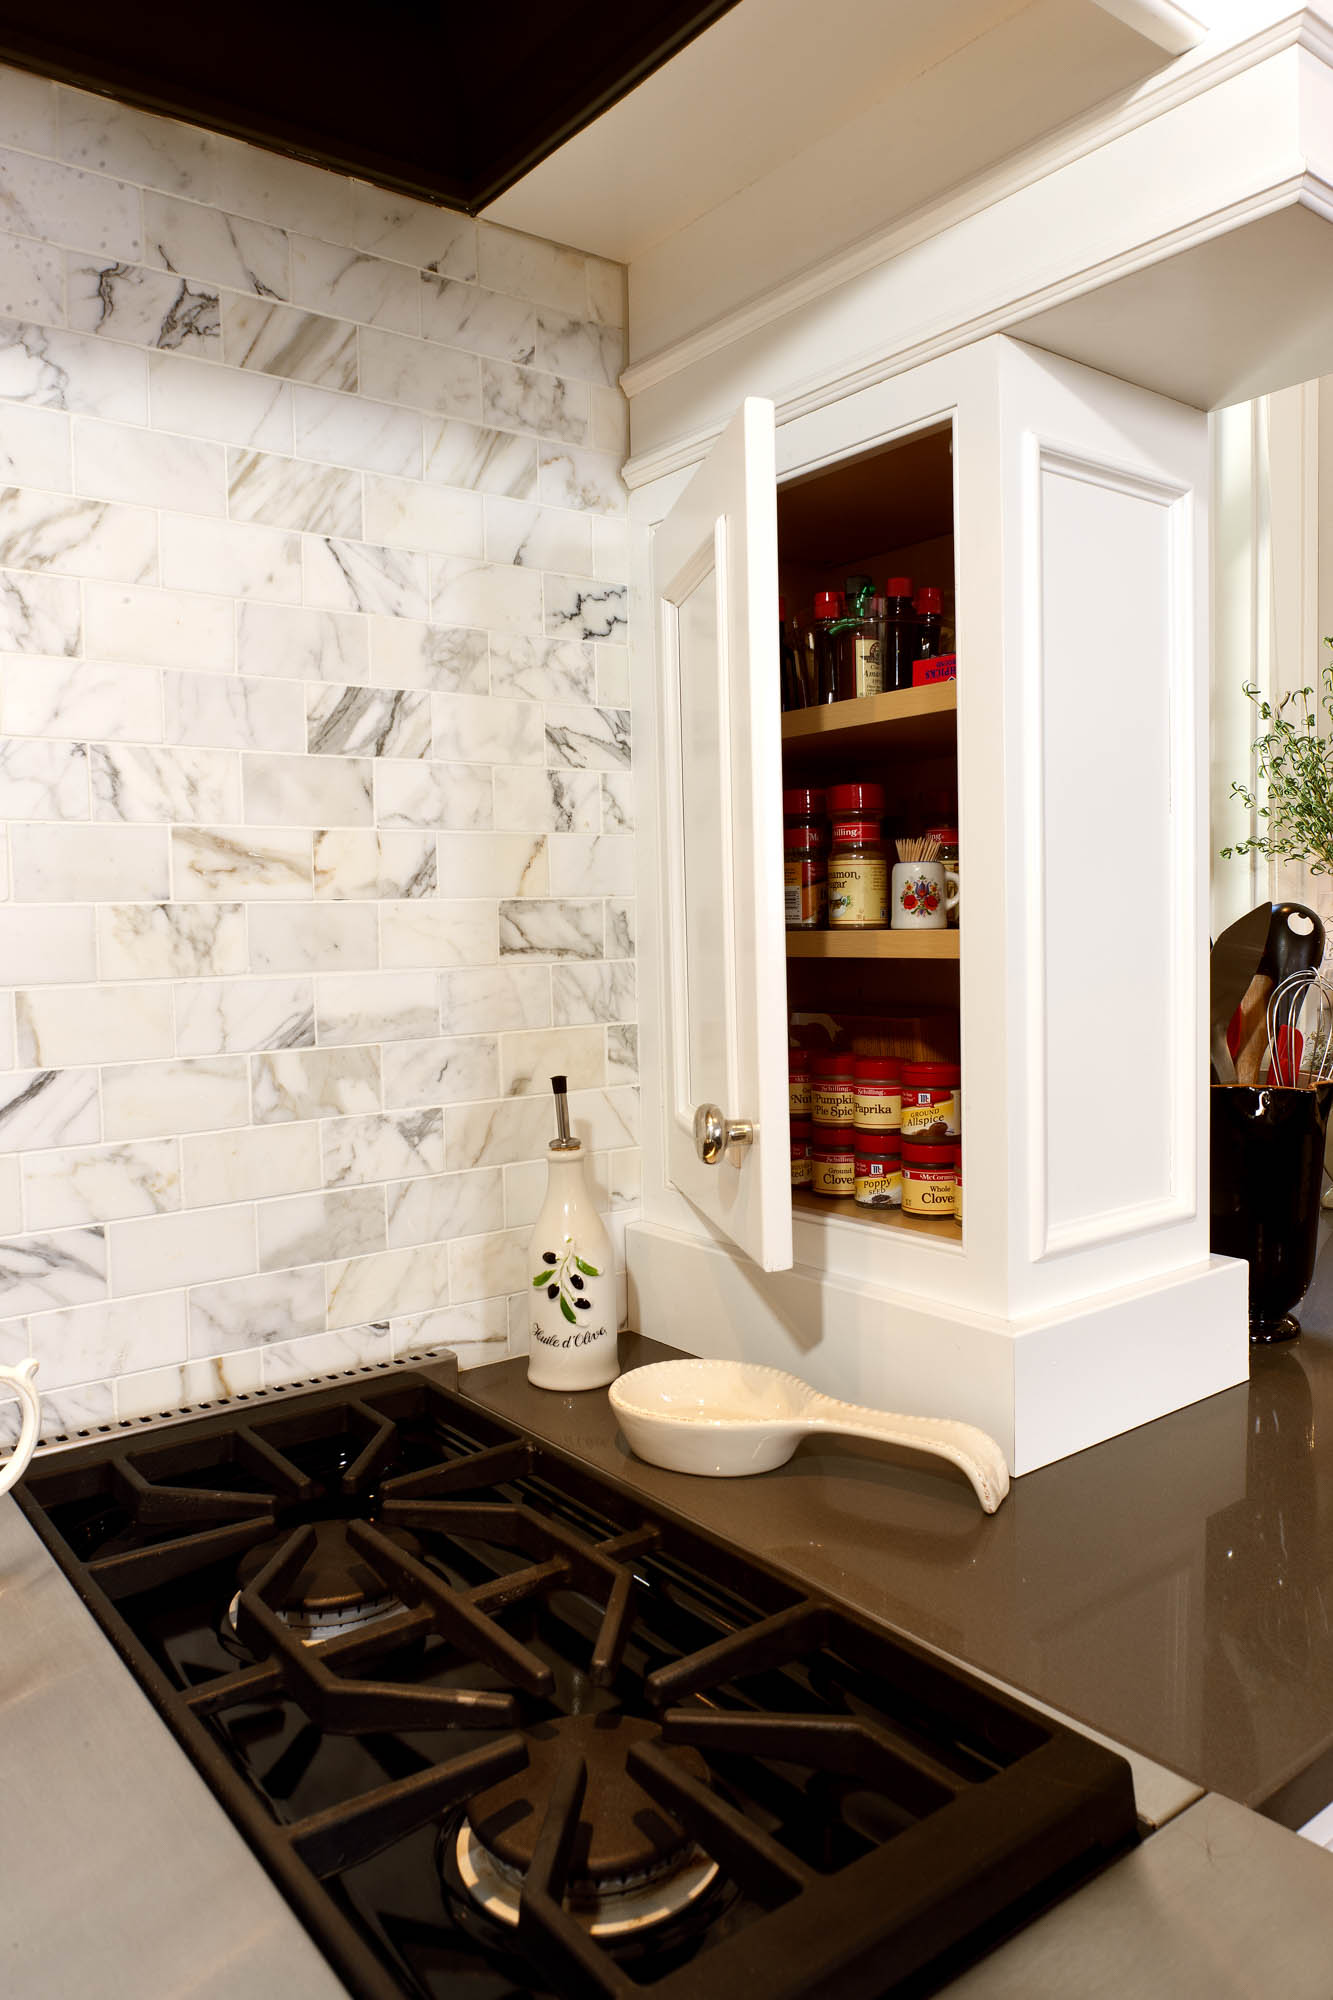 Painted kitchen cabinet with spice rack in White by Showplace Cabinetry